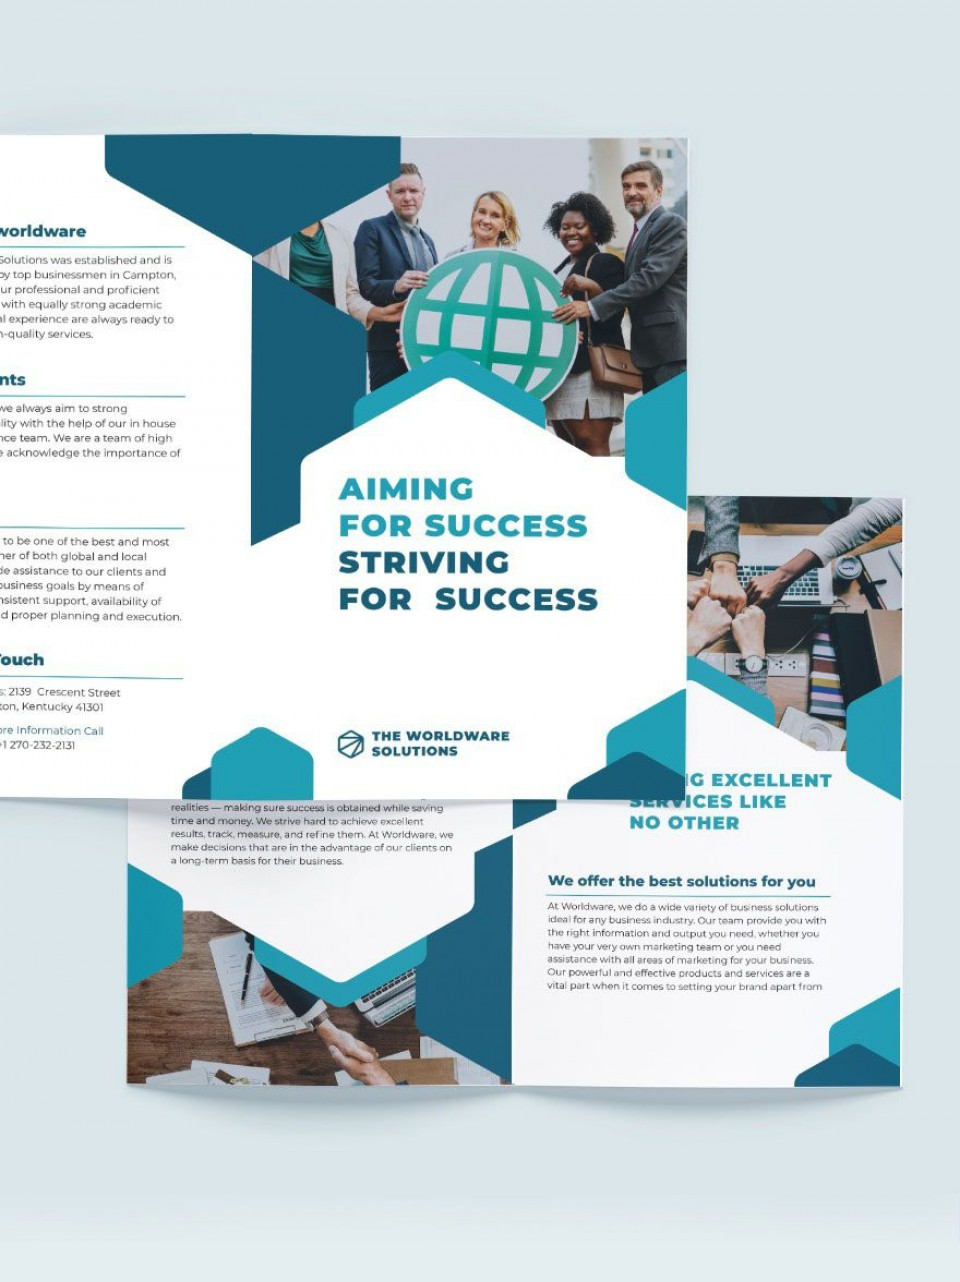 004 Outstanding Adobe Photoshop Brochure Template Free Download High Resolution 960